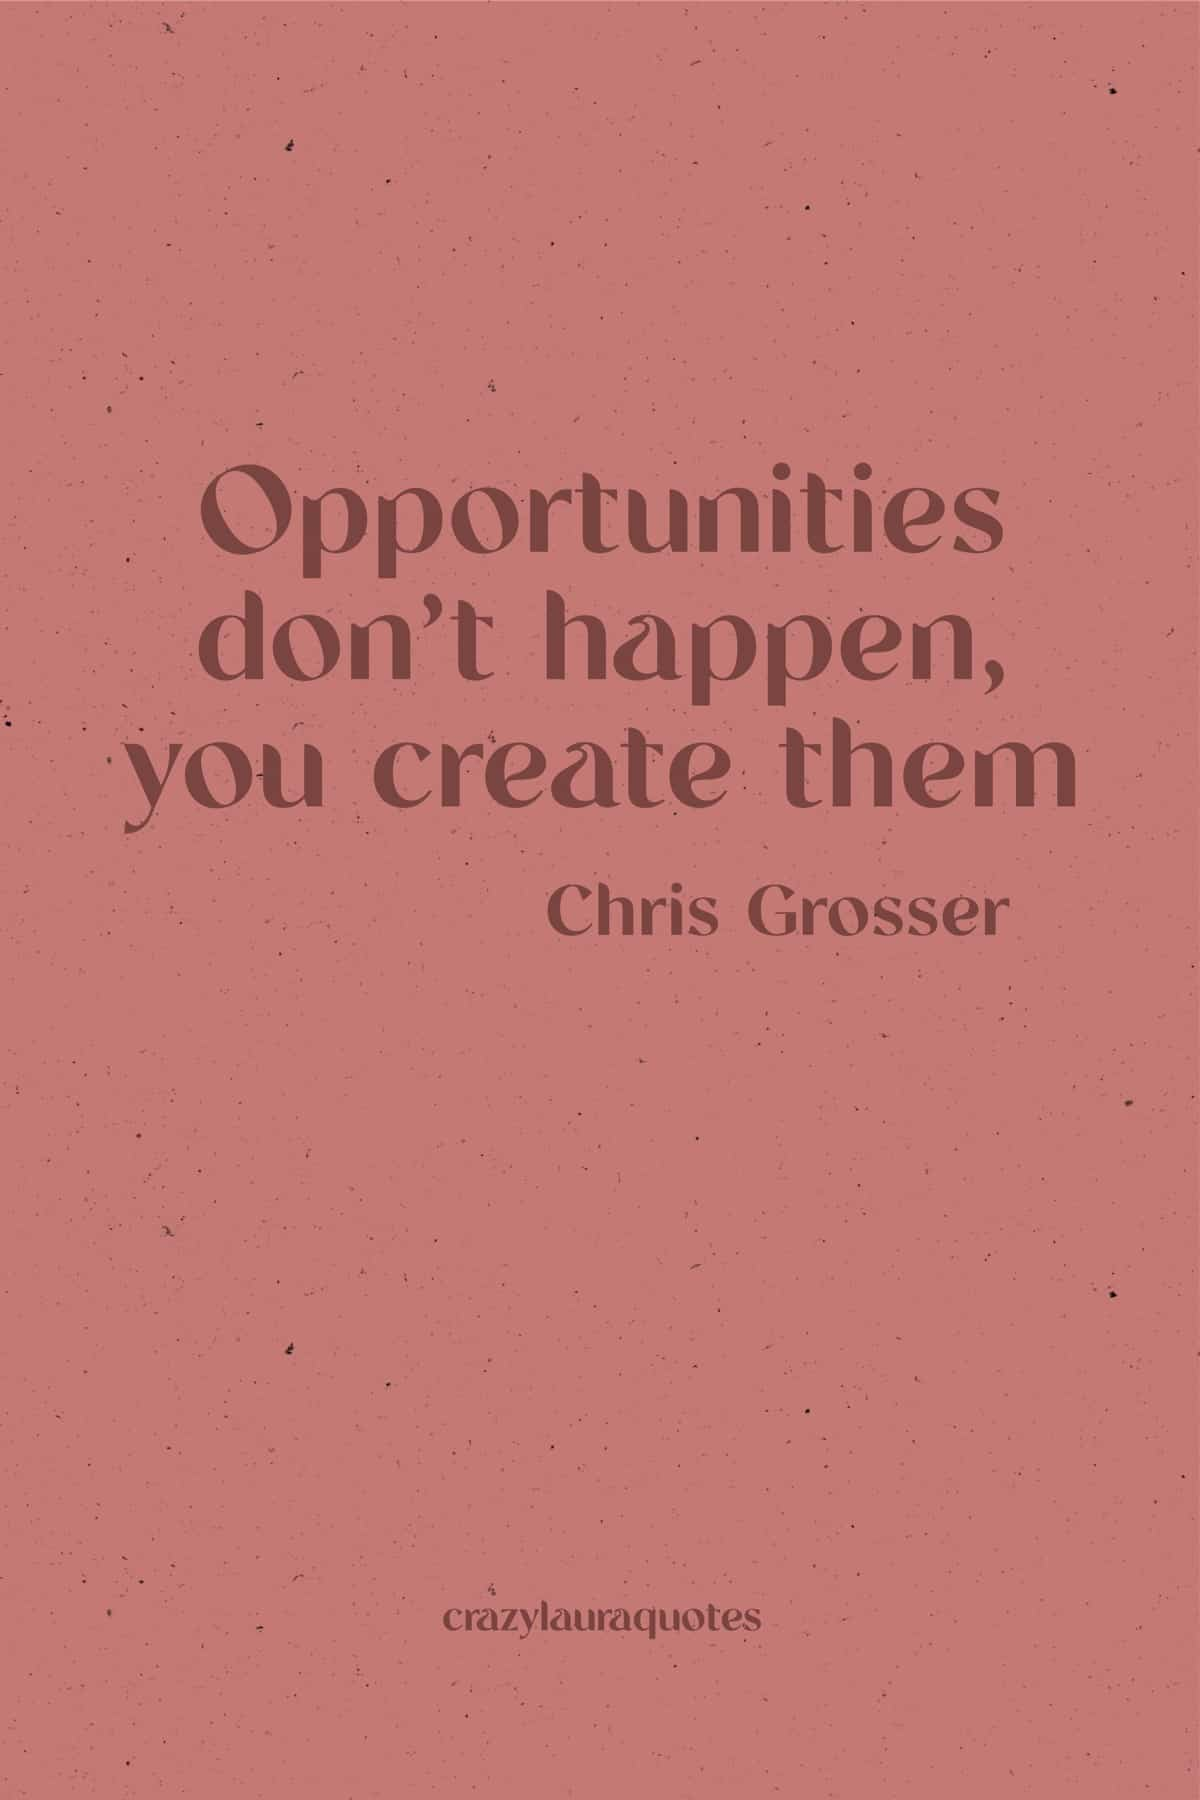 you create opportunities monday quote